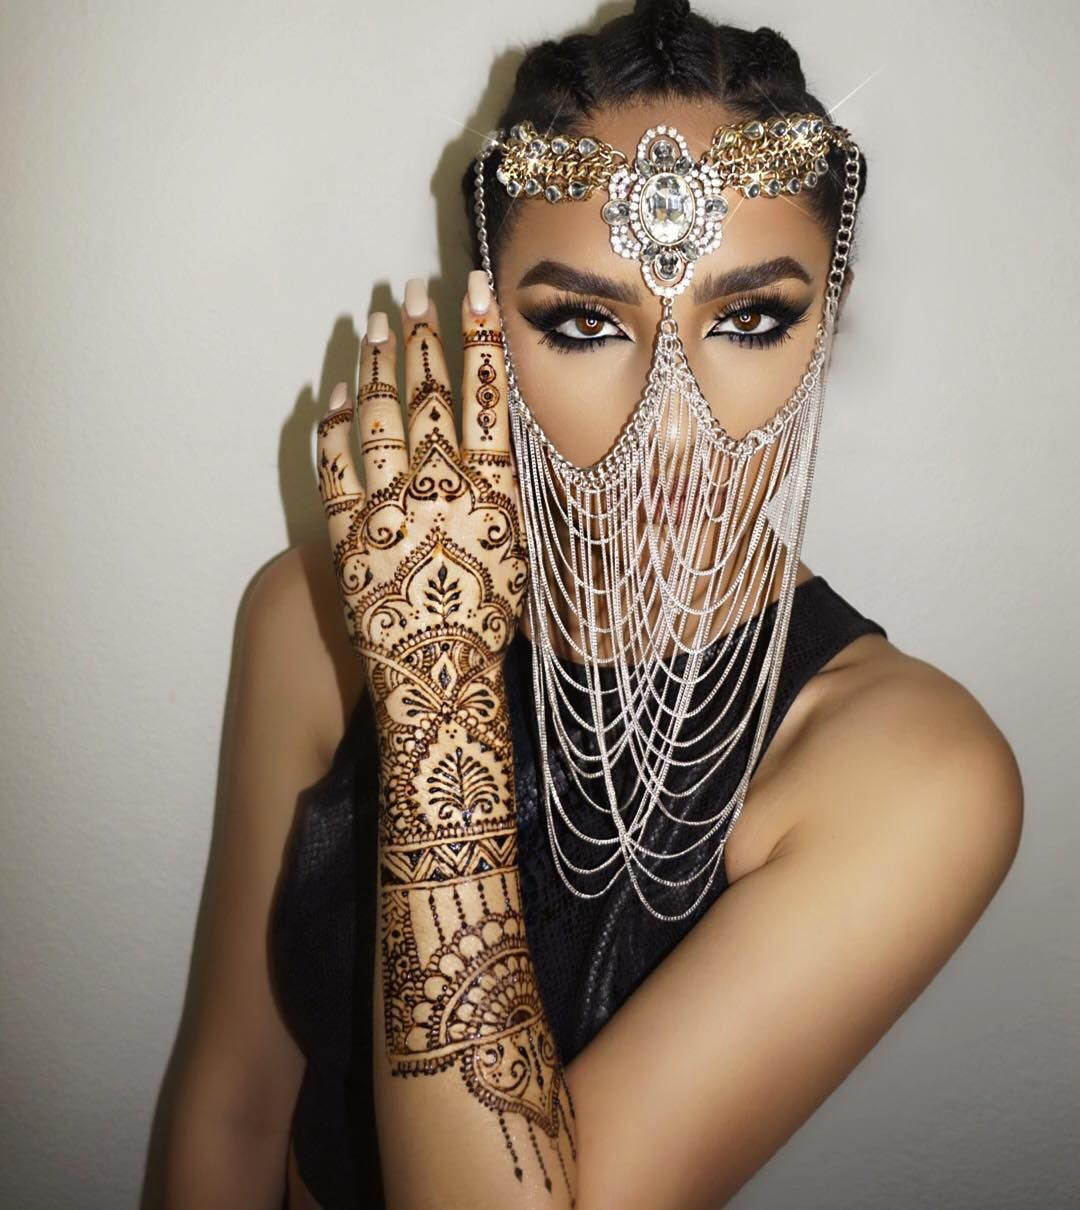 """Photo of Ash K Holm on Instagram: """"Let the day kill ??? Photography @theprinceofpersia ? My henna was made by the famous henna artist @gloryofhenna ?? Headpiece of my …"""""""